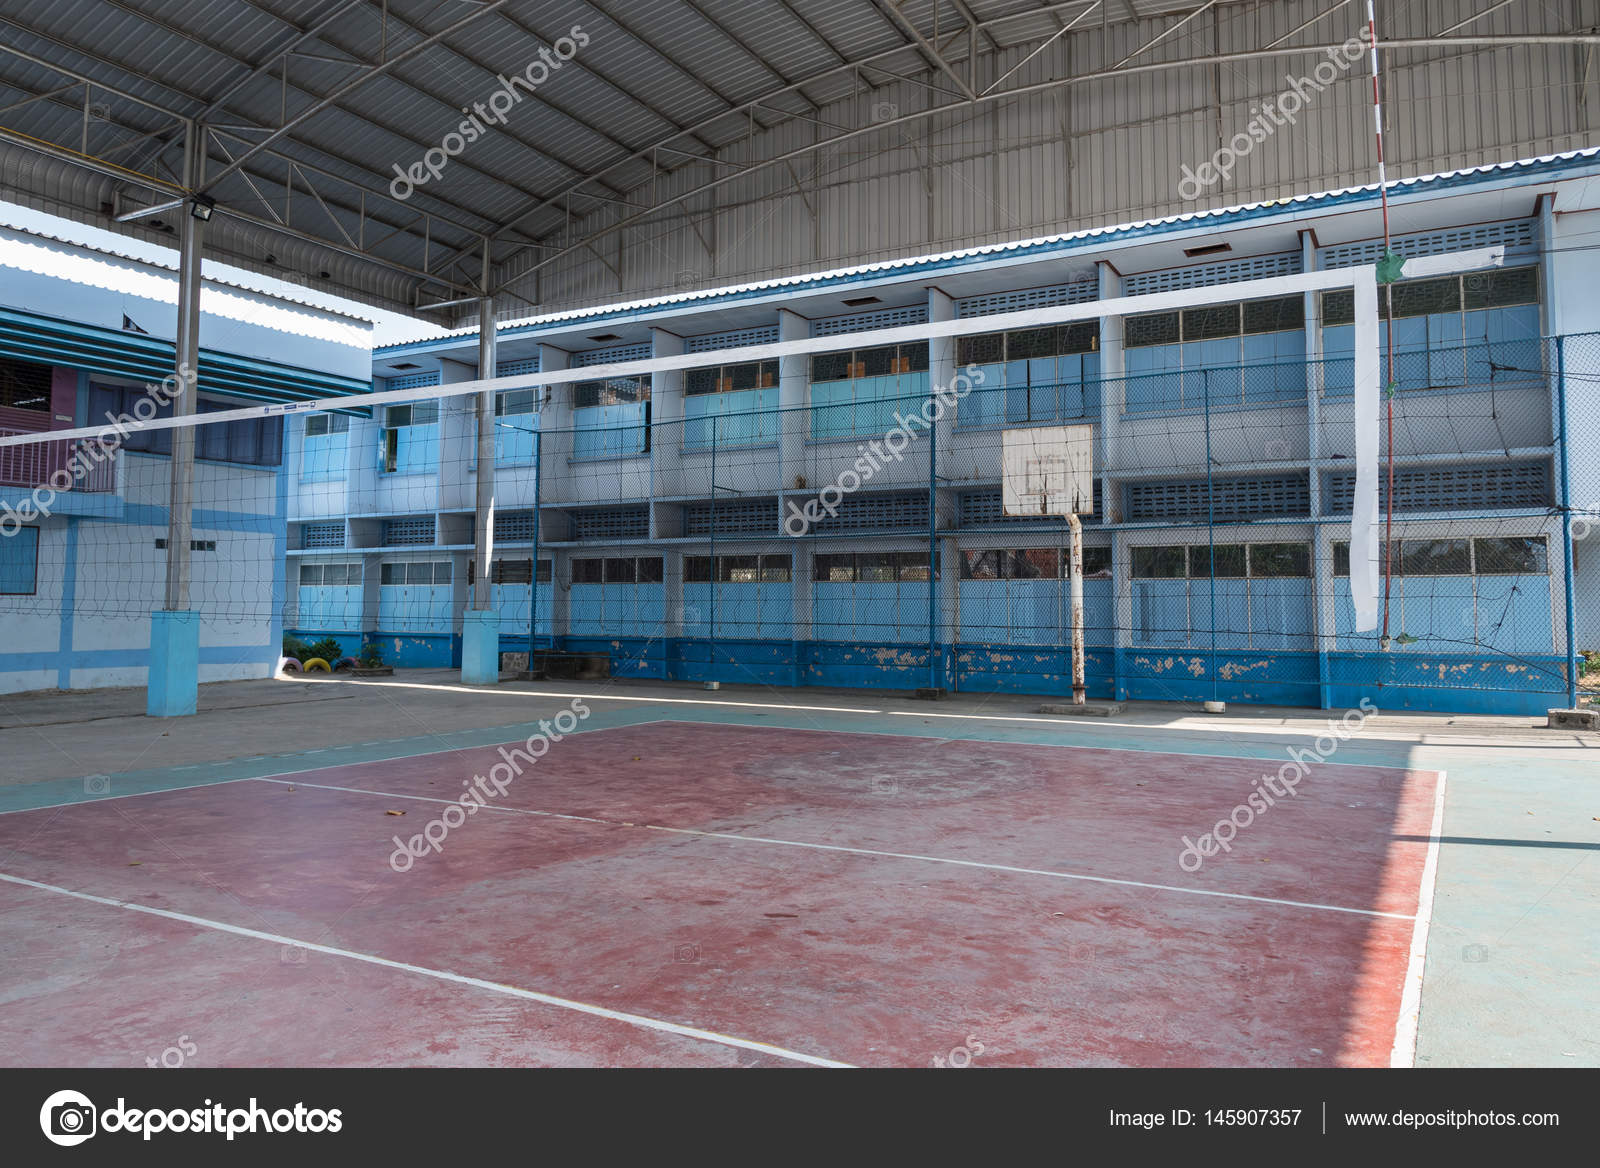 Volleyball court school gym indoor. — Stock Photo © Bubbers #145907357